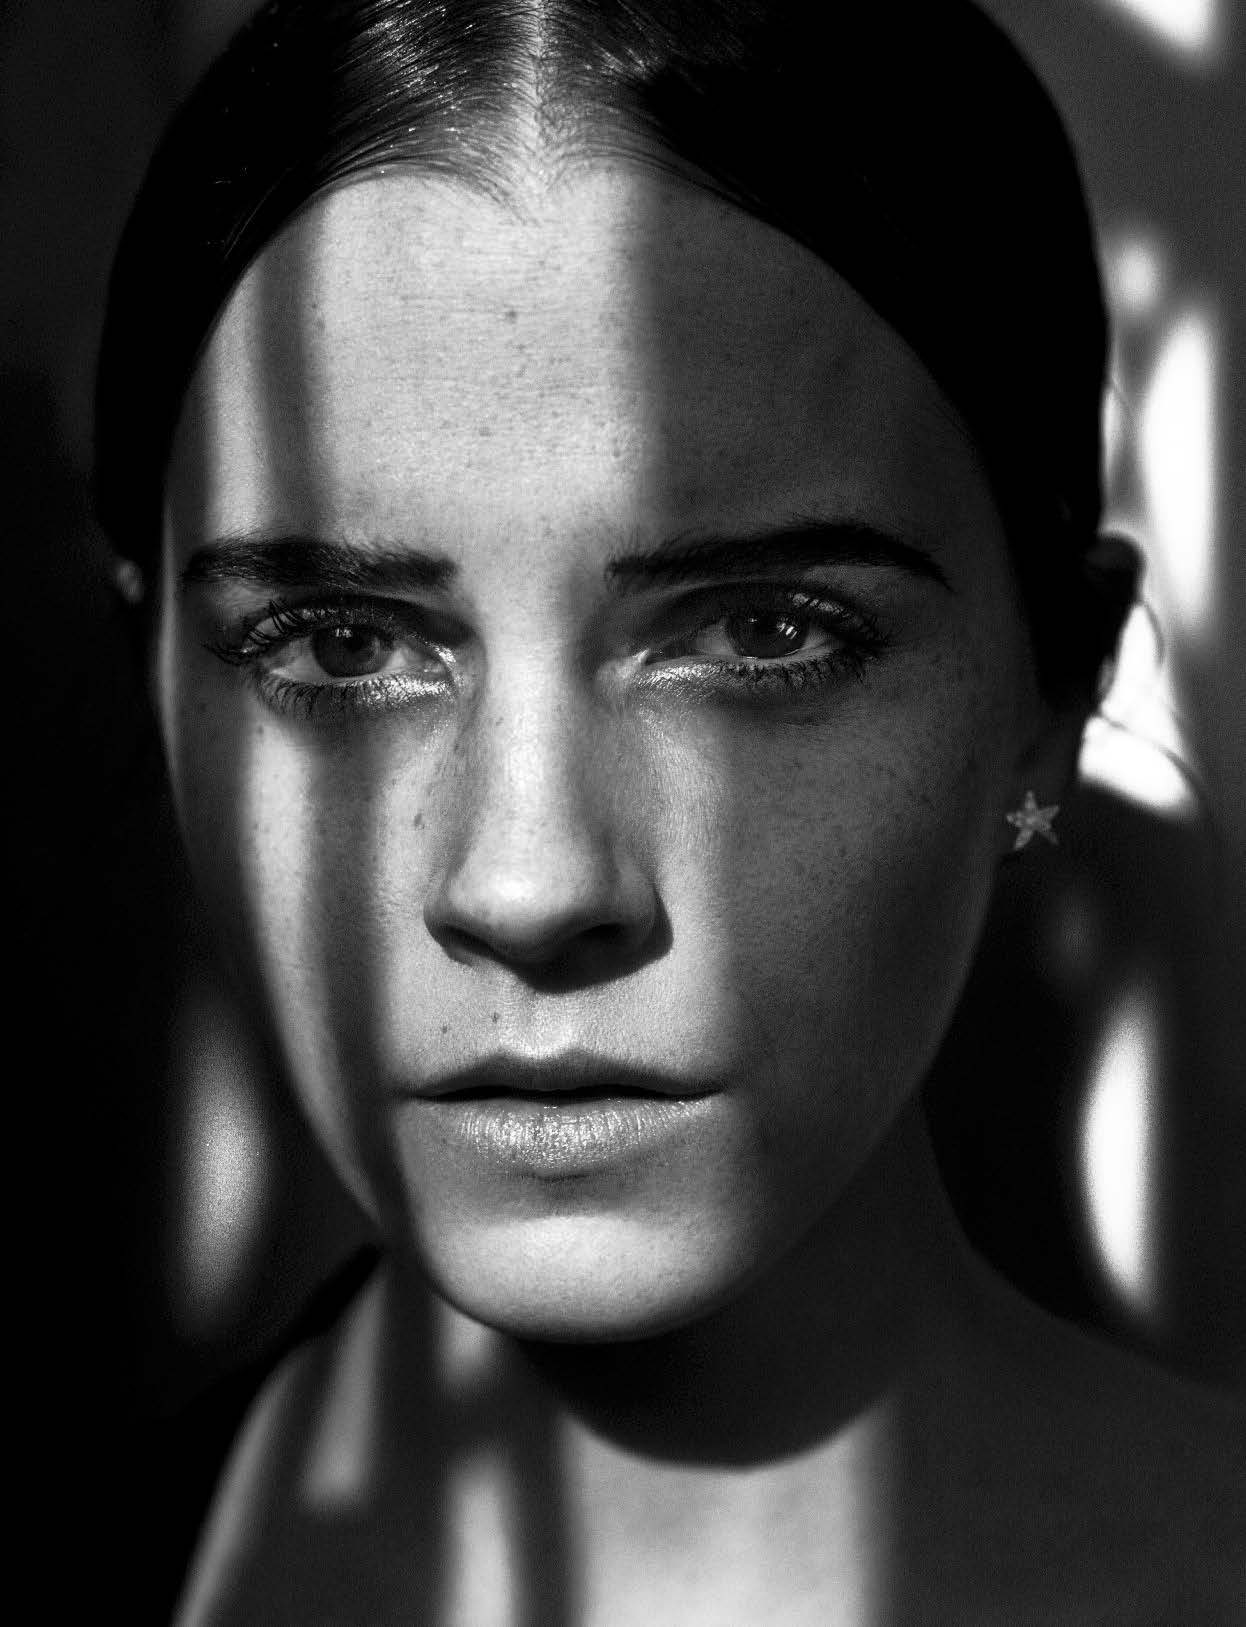 emma-watson-by-vincent-peters-for-vogue-italia-november-2015-exposition-hune-paris-folkr